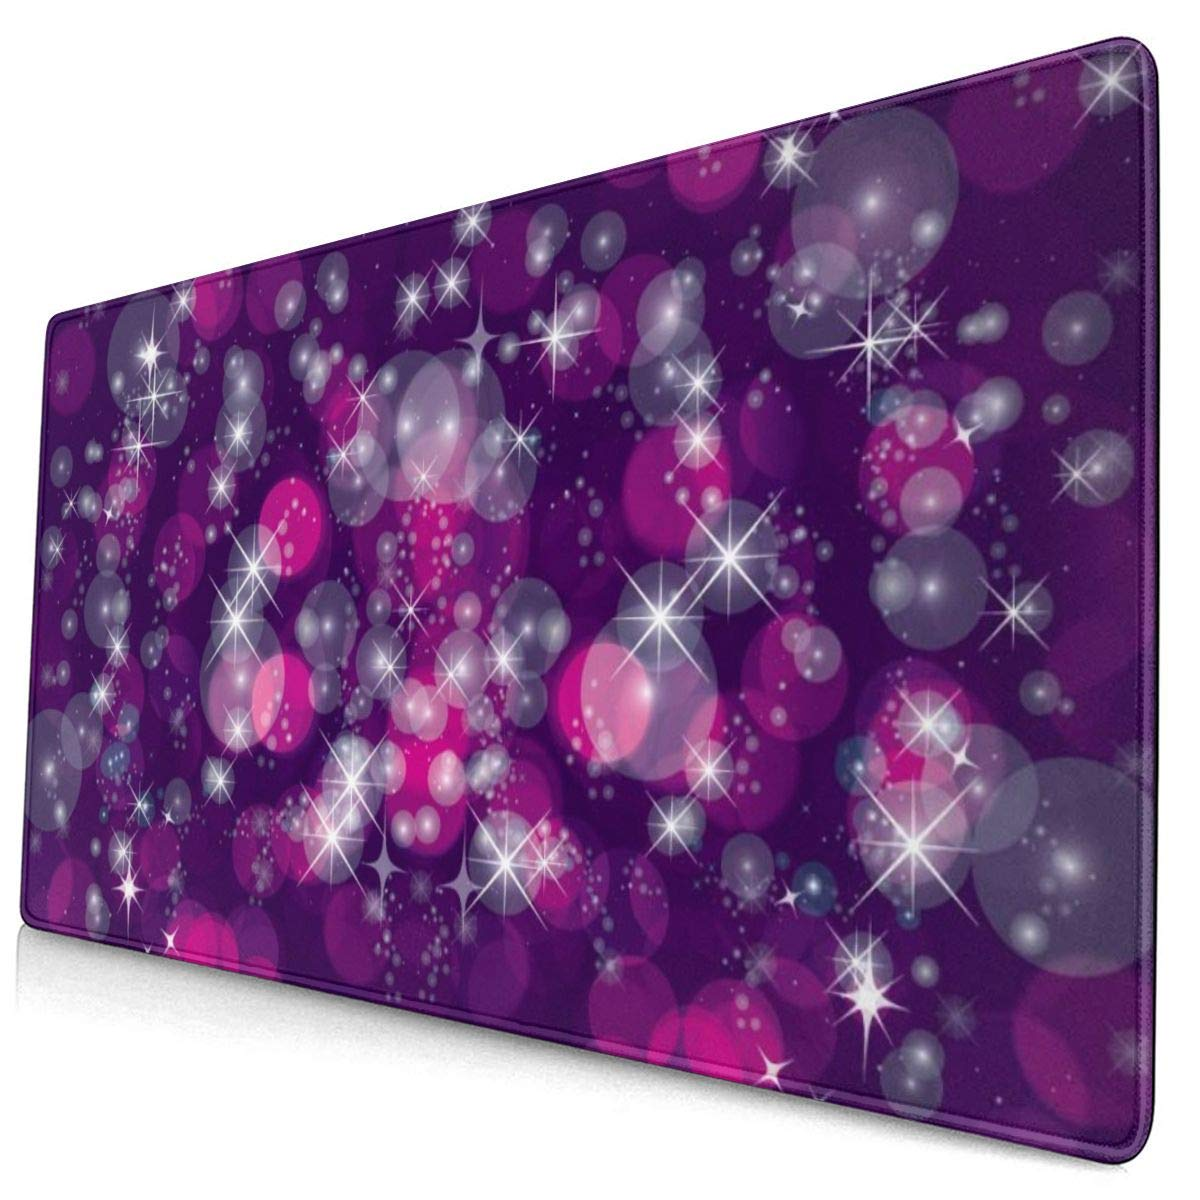 29.5x15.7x0.12 Inch Happy Time Design Pattern XXL XL Large Gaming Mouse Pad Mat Long Extended Mousepad Desk Pad Non-Slip Rubber Mice Pads Stitched Edges